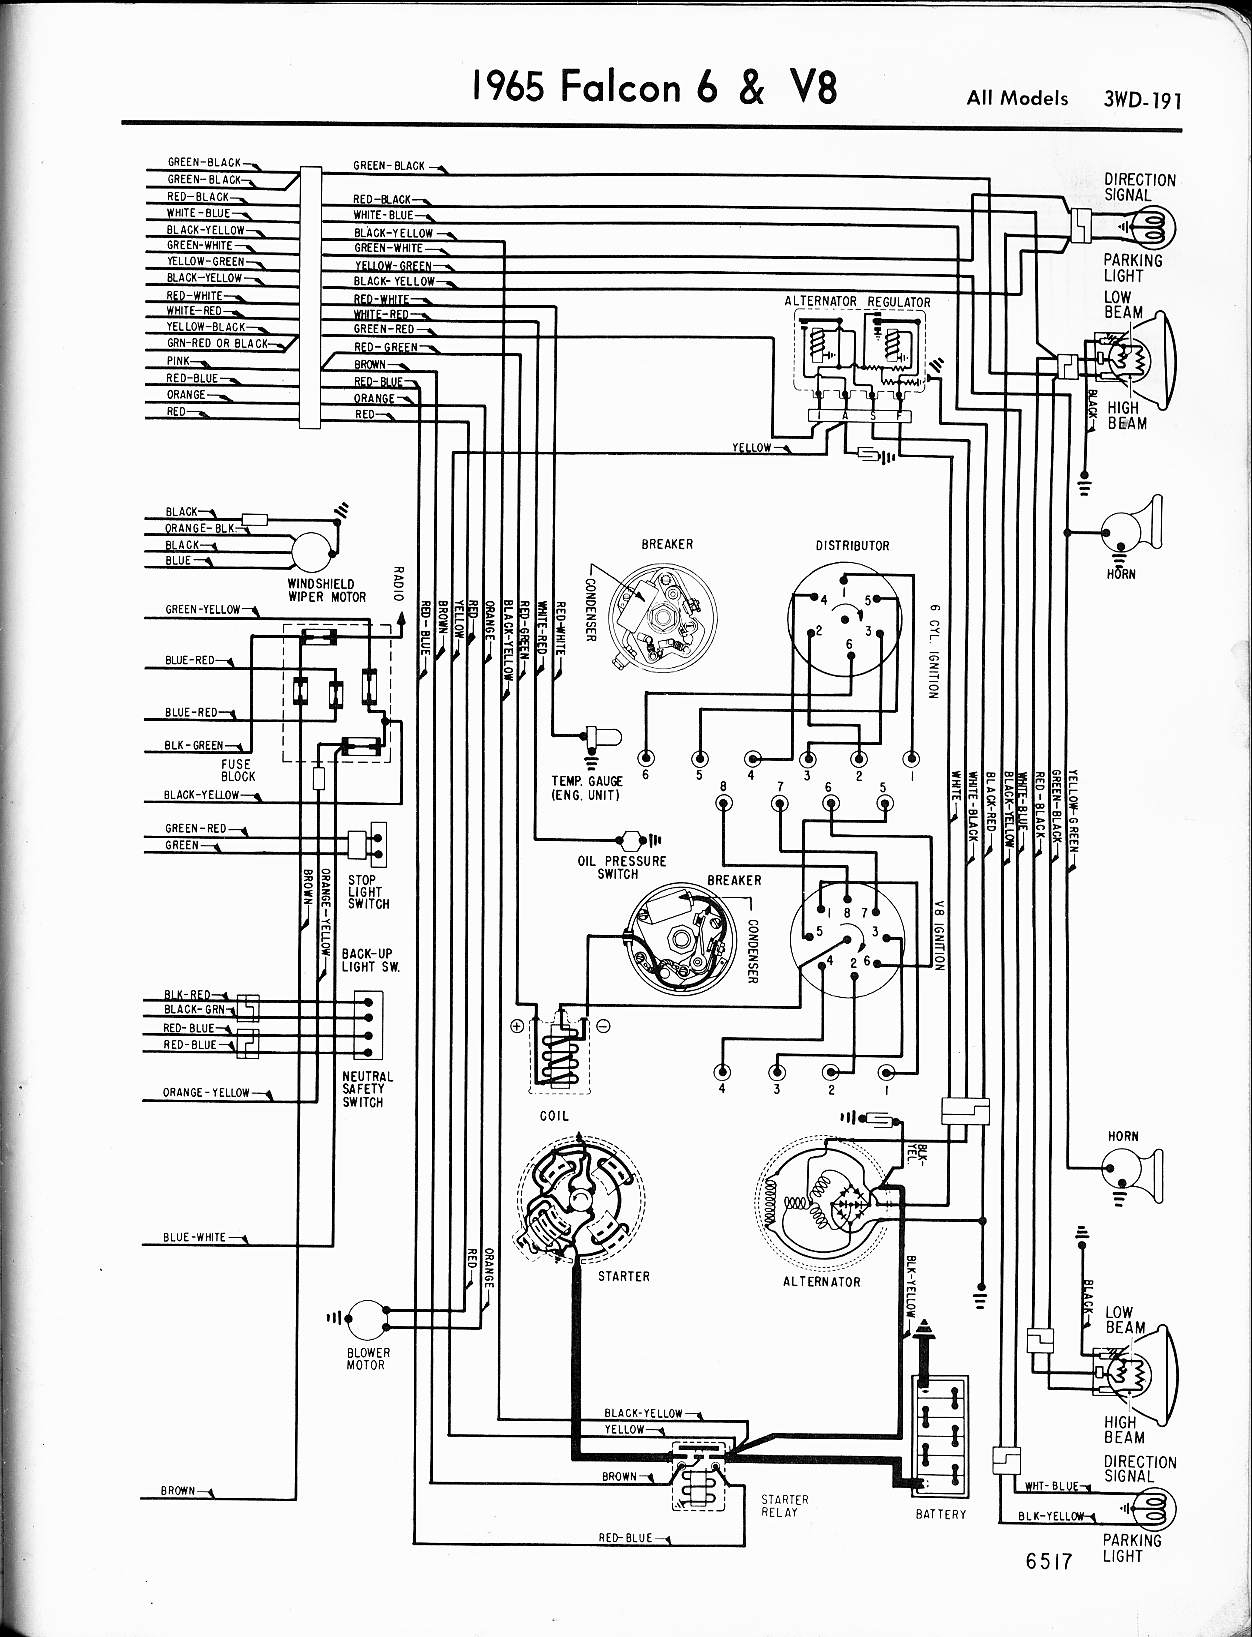 ford wiring diagram distributor nervous system fill in the blank motorcraft 12127 free starter solenoid elegant 57 65